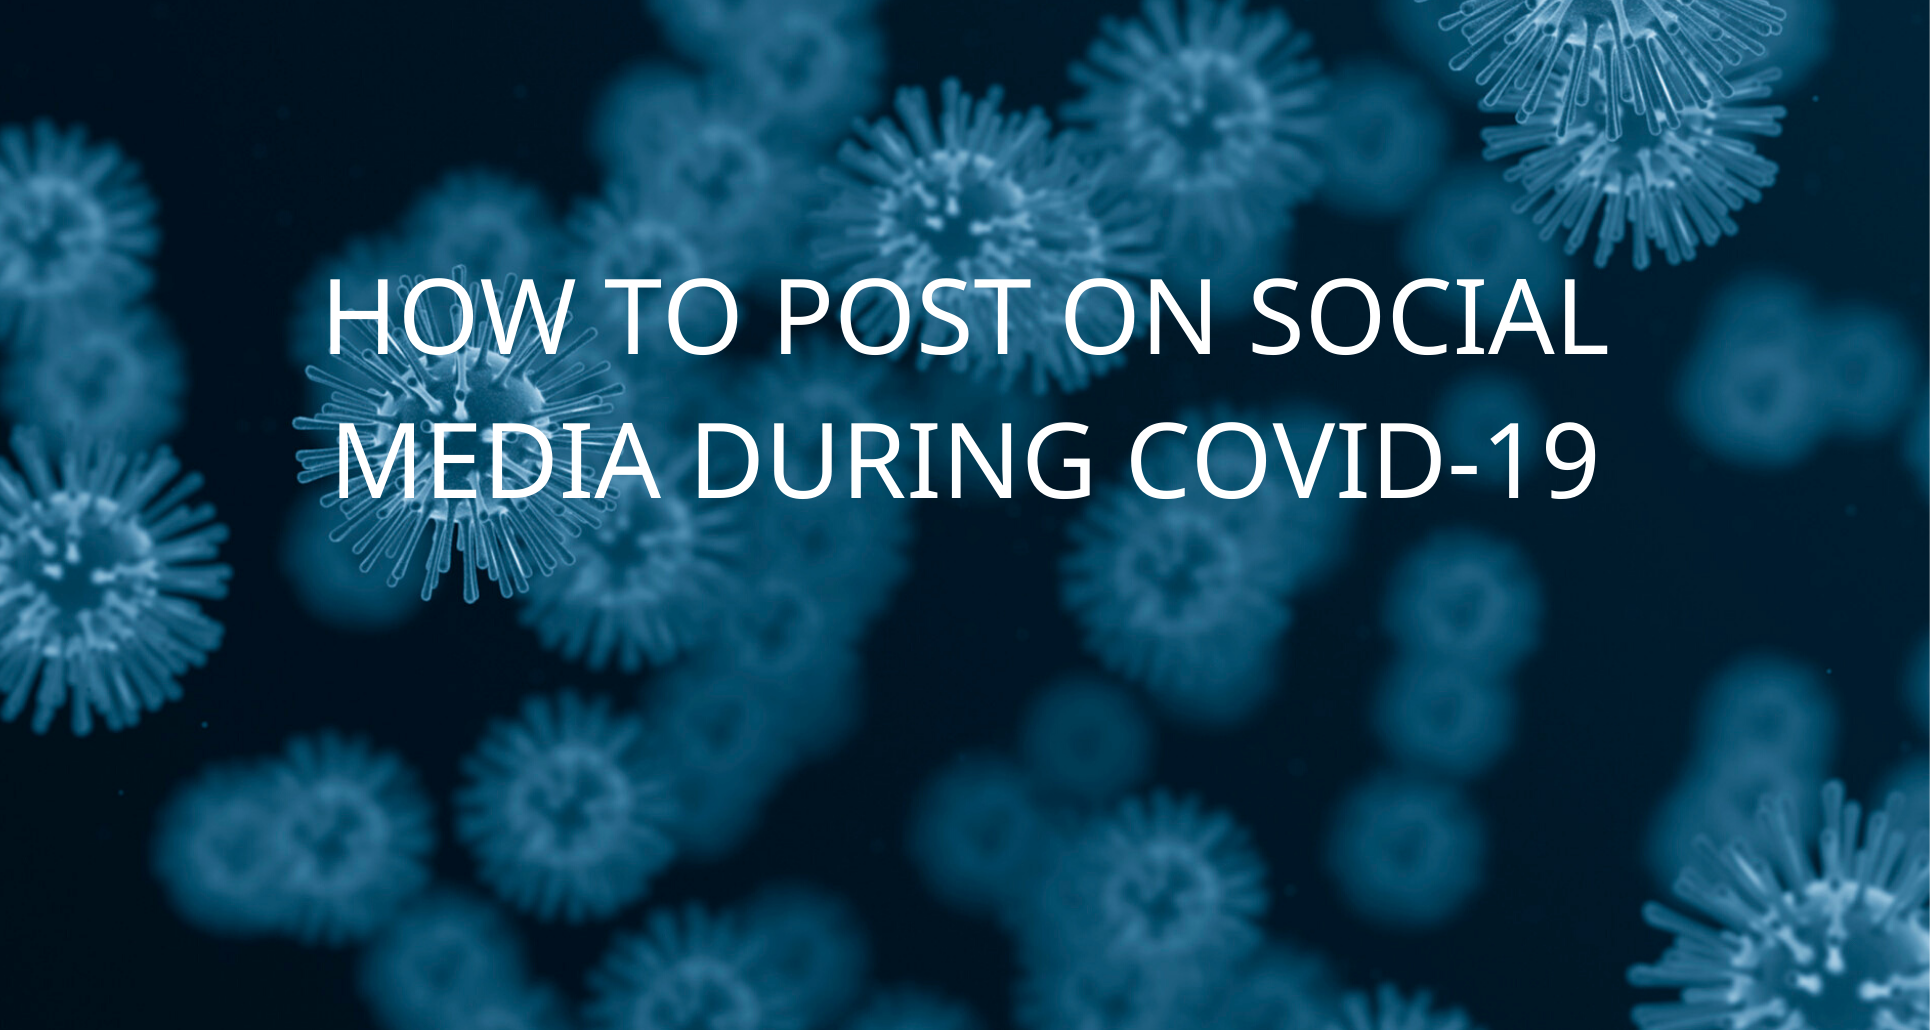 How-to-post-on-social-media-during-COVID-19